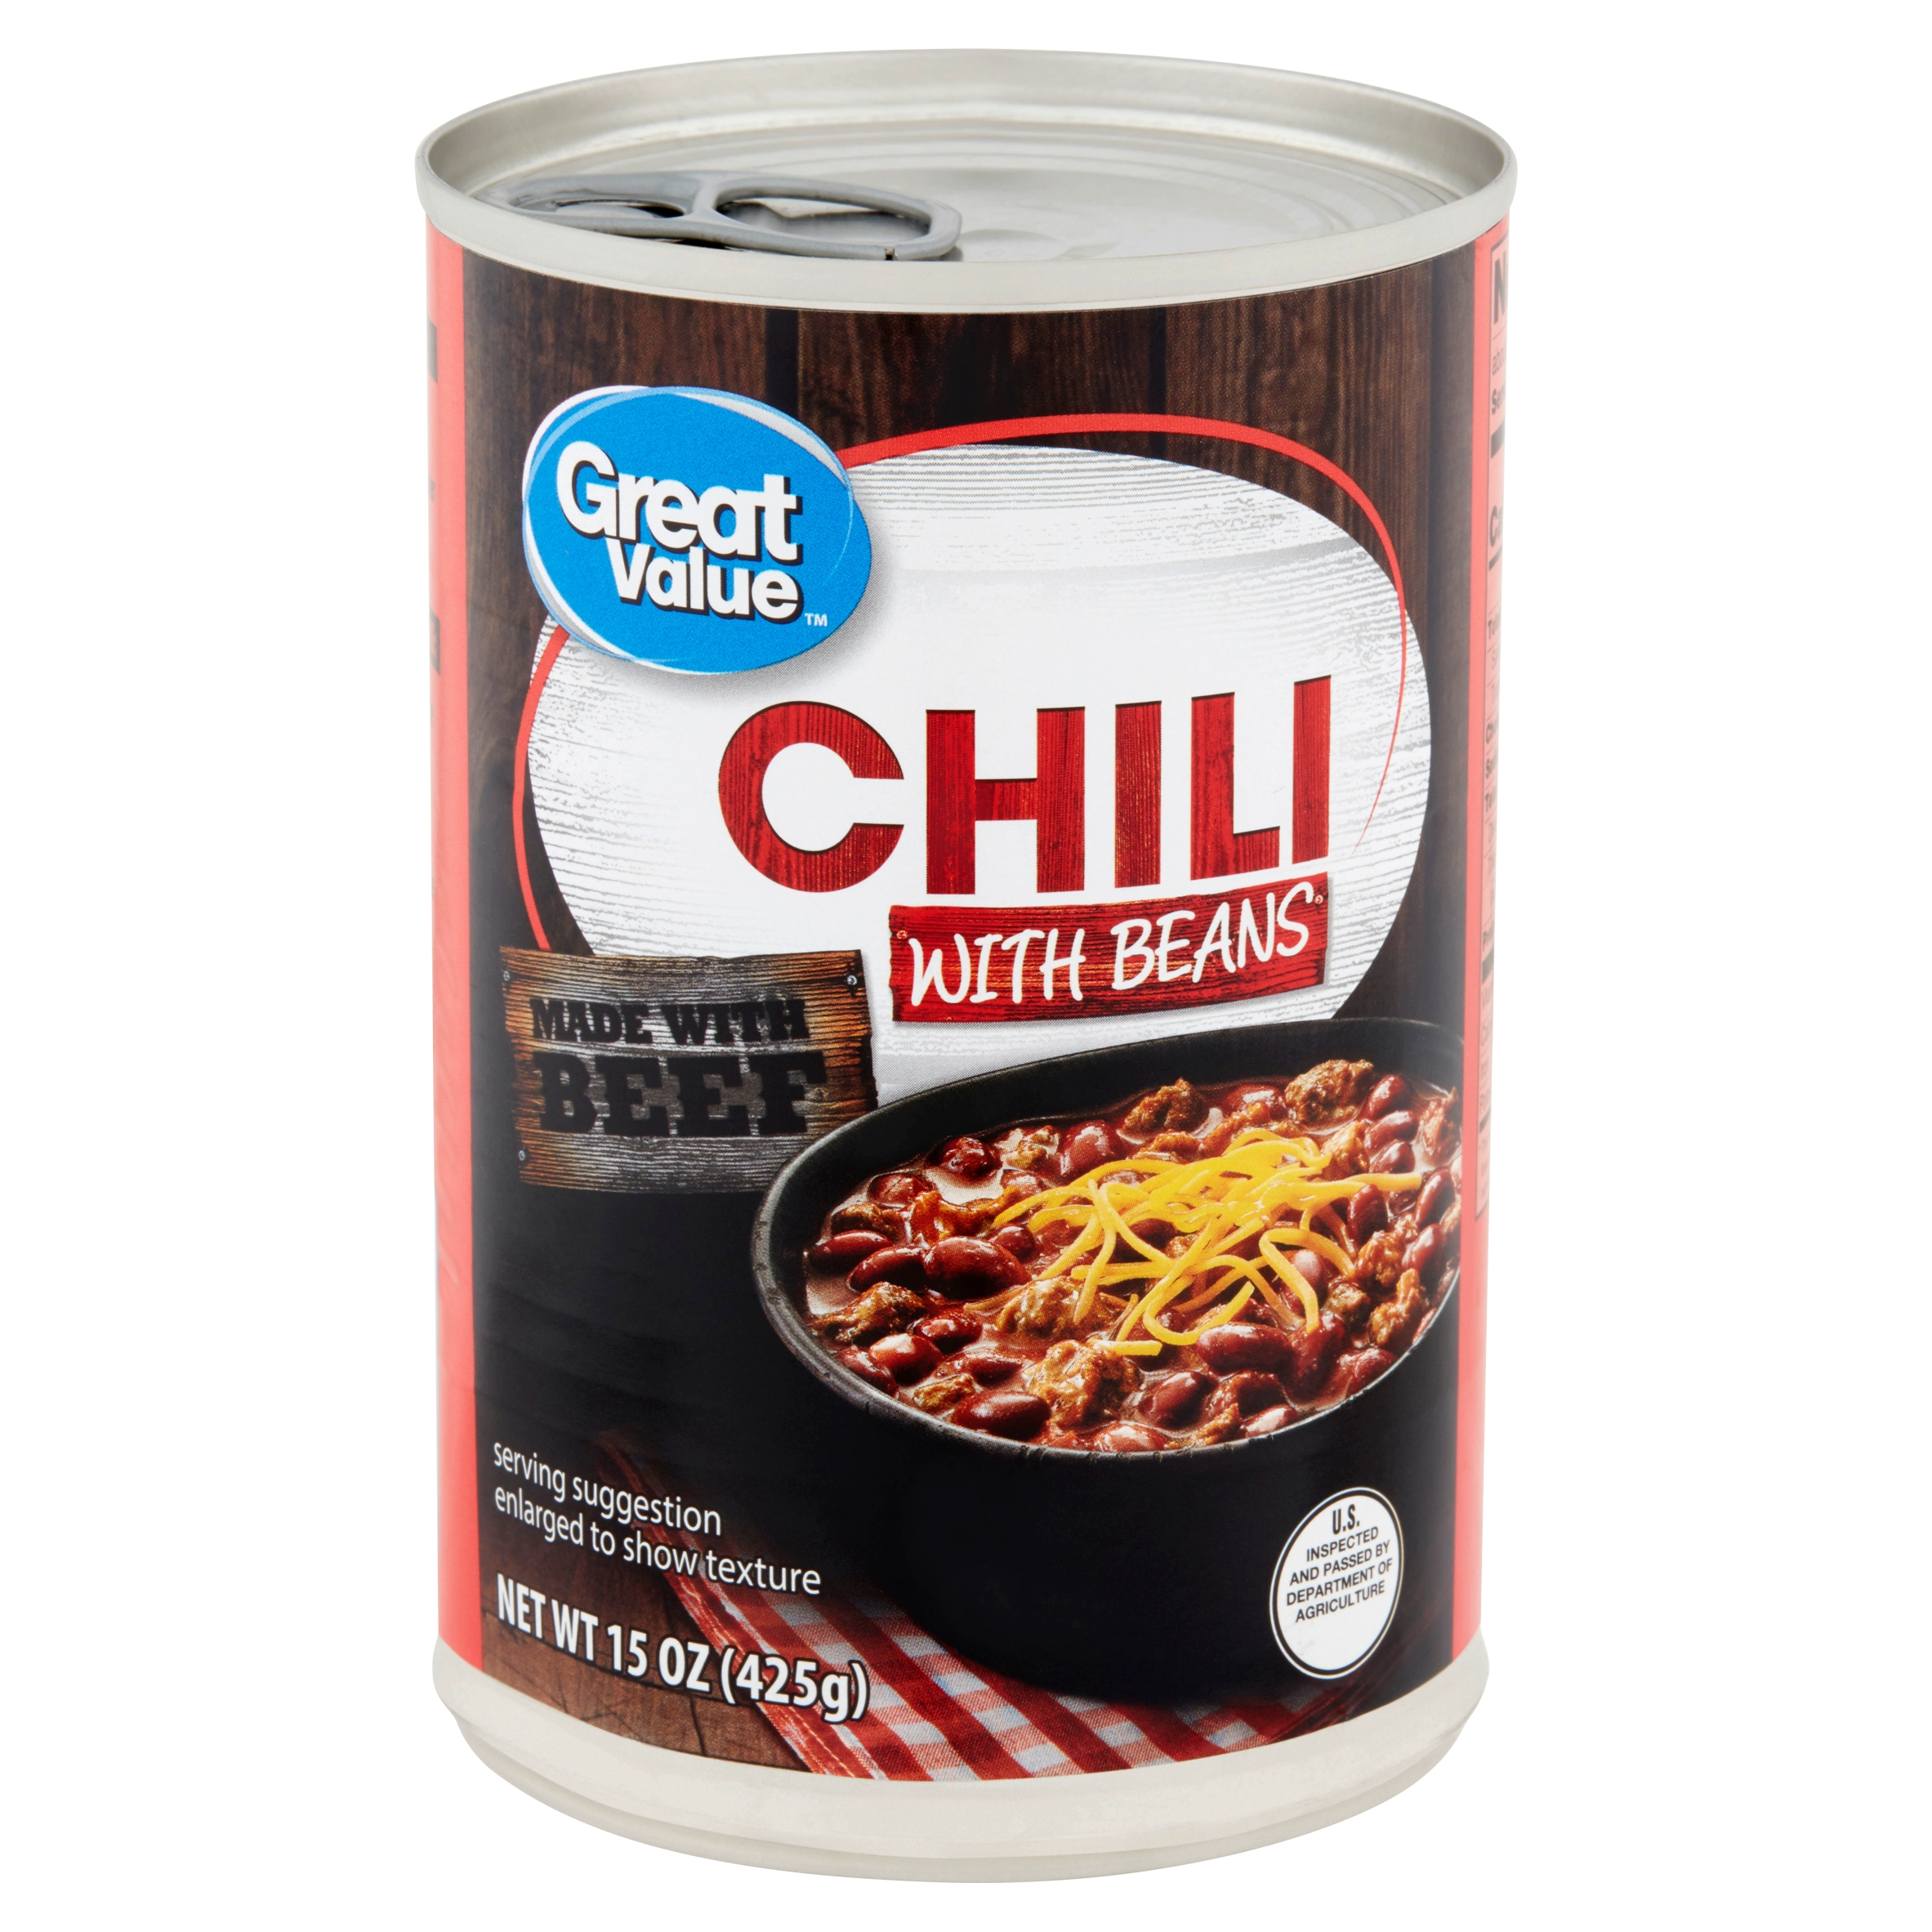 (4 Pack) Great Value Chili with Beans, 15 oz